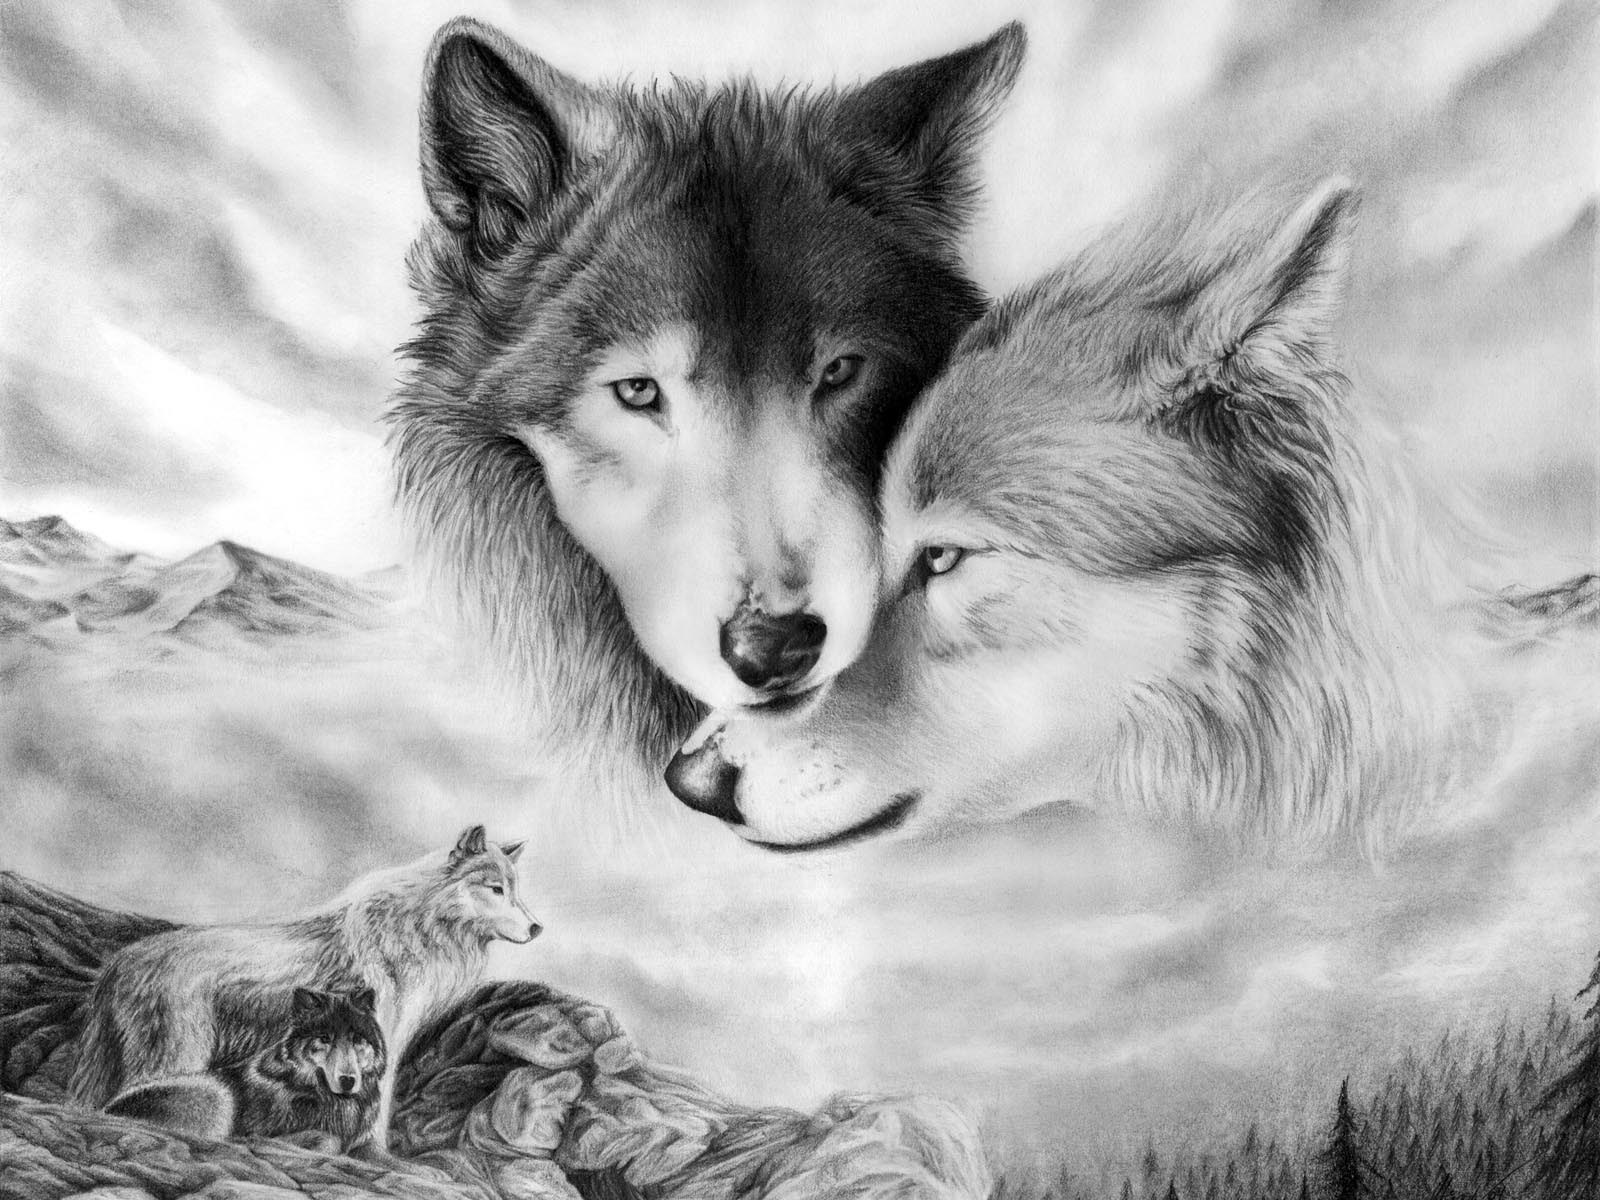 Downlaod wolf new hd wallpapers for desktop pc Animited